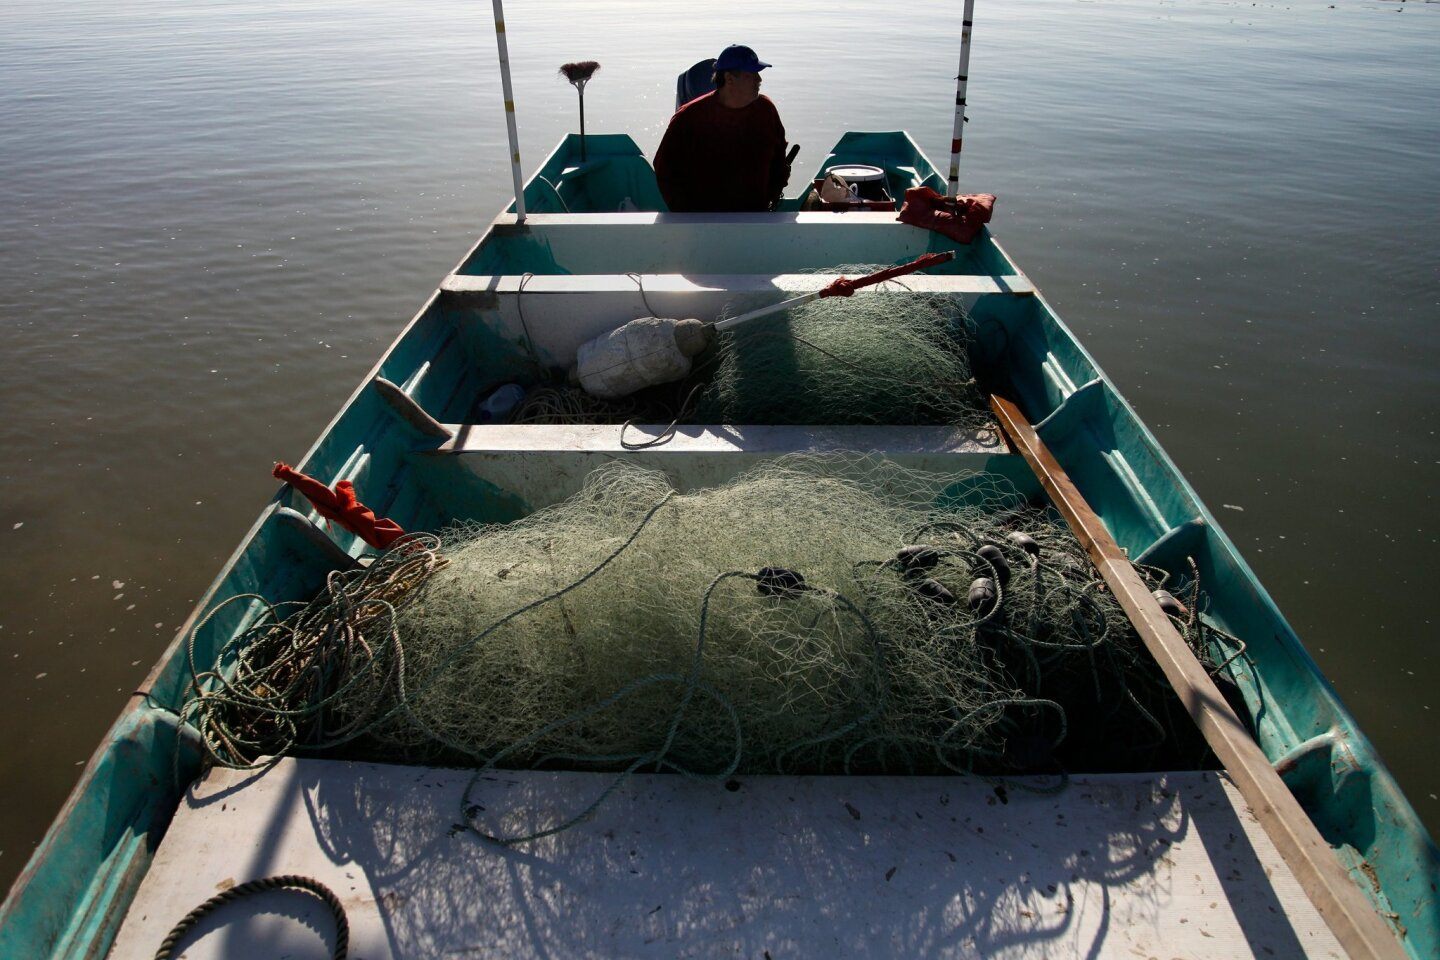 Fisherman Manuel Jordan prepares to leave the San Felipe port early morning. The ban for gill net fishing begins April 28, 2015.